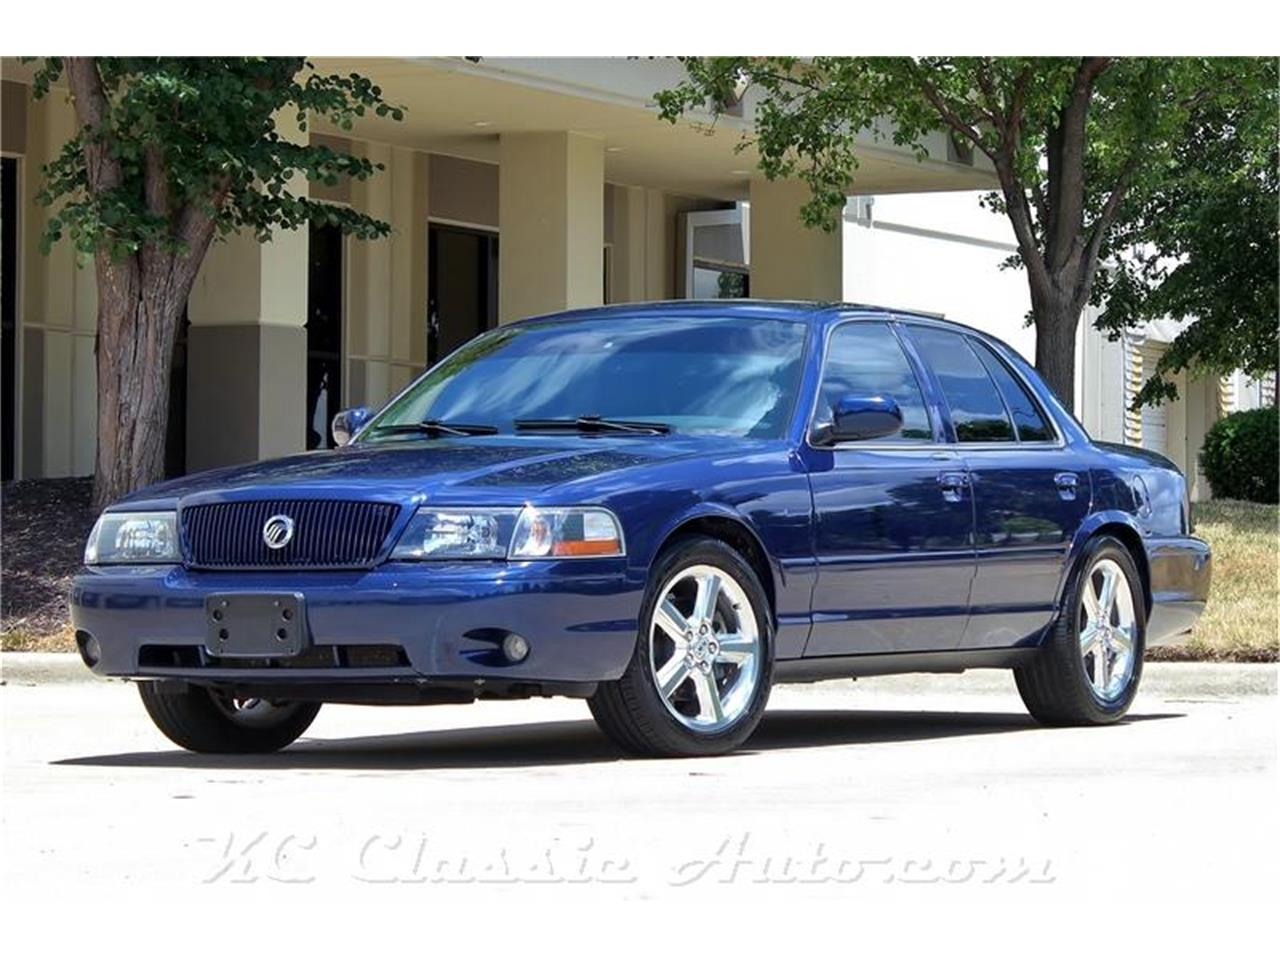 2003 Mercury Marauder for sale in Lenexa, KS – photo 38